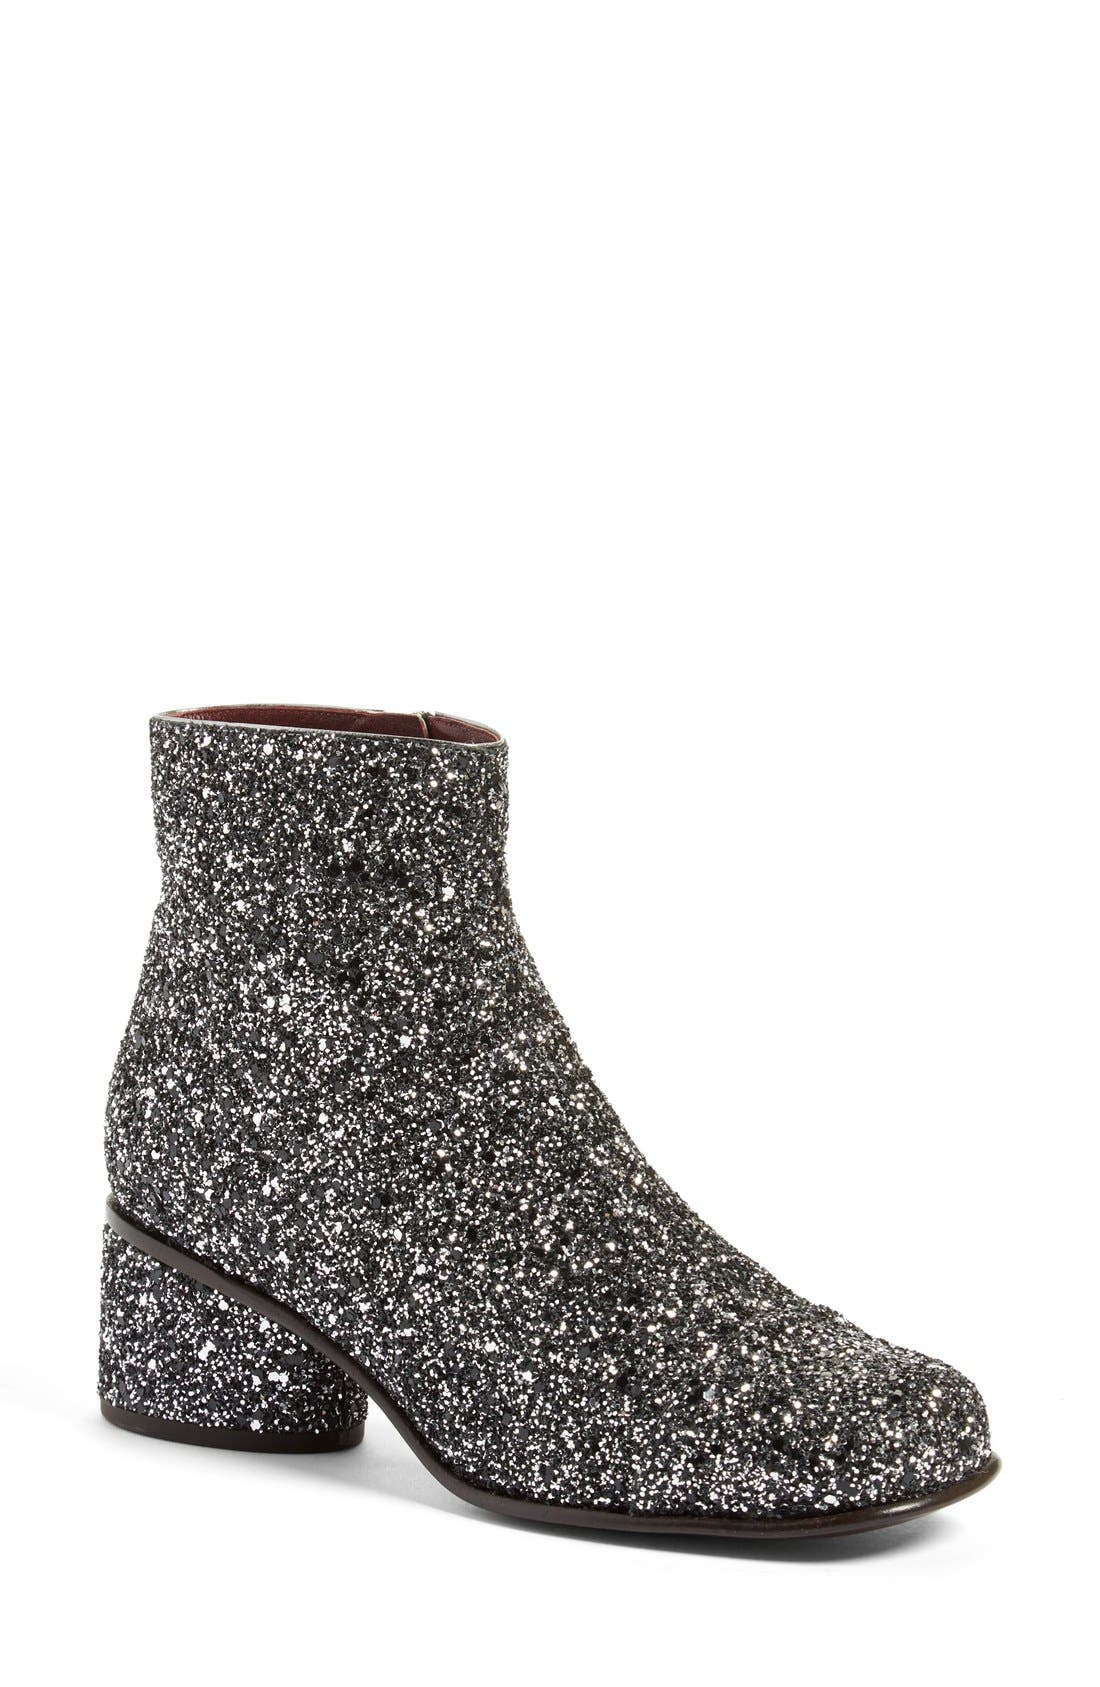 'Camilla' Ankle Boot, Main, color, 040